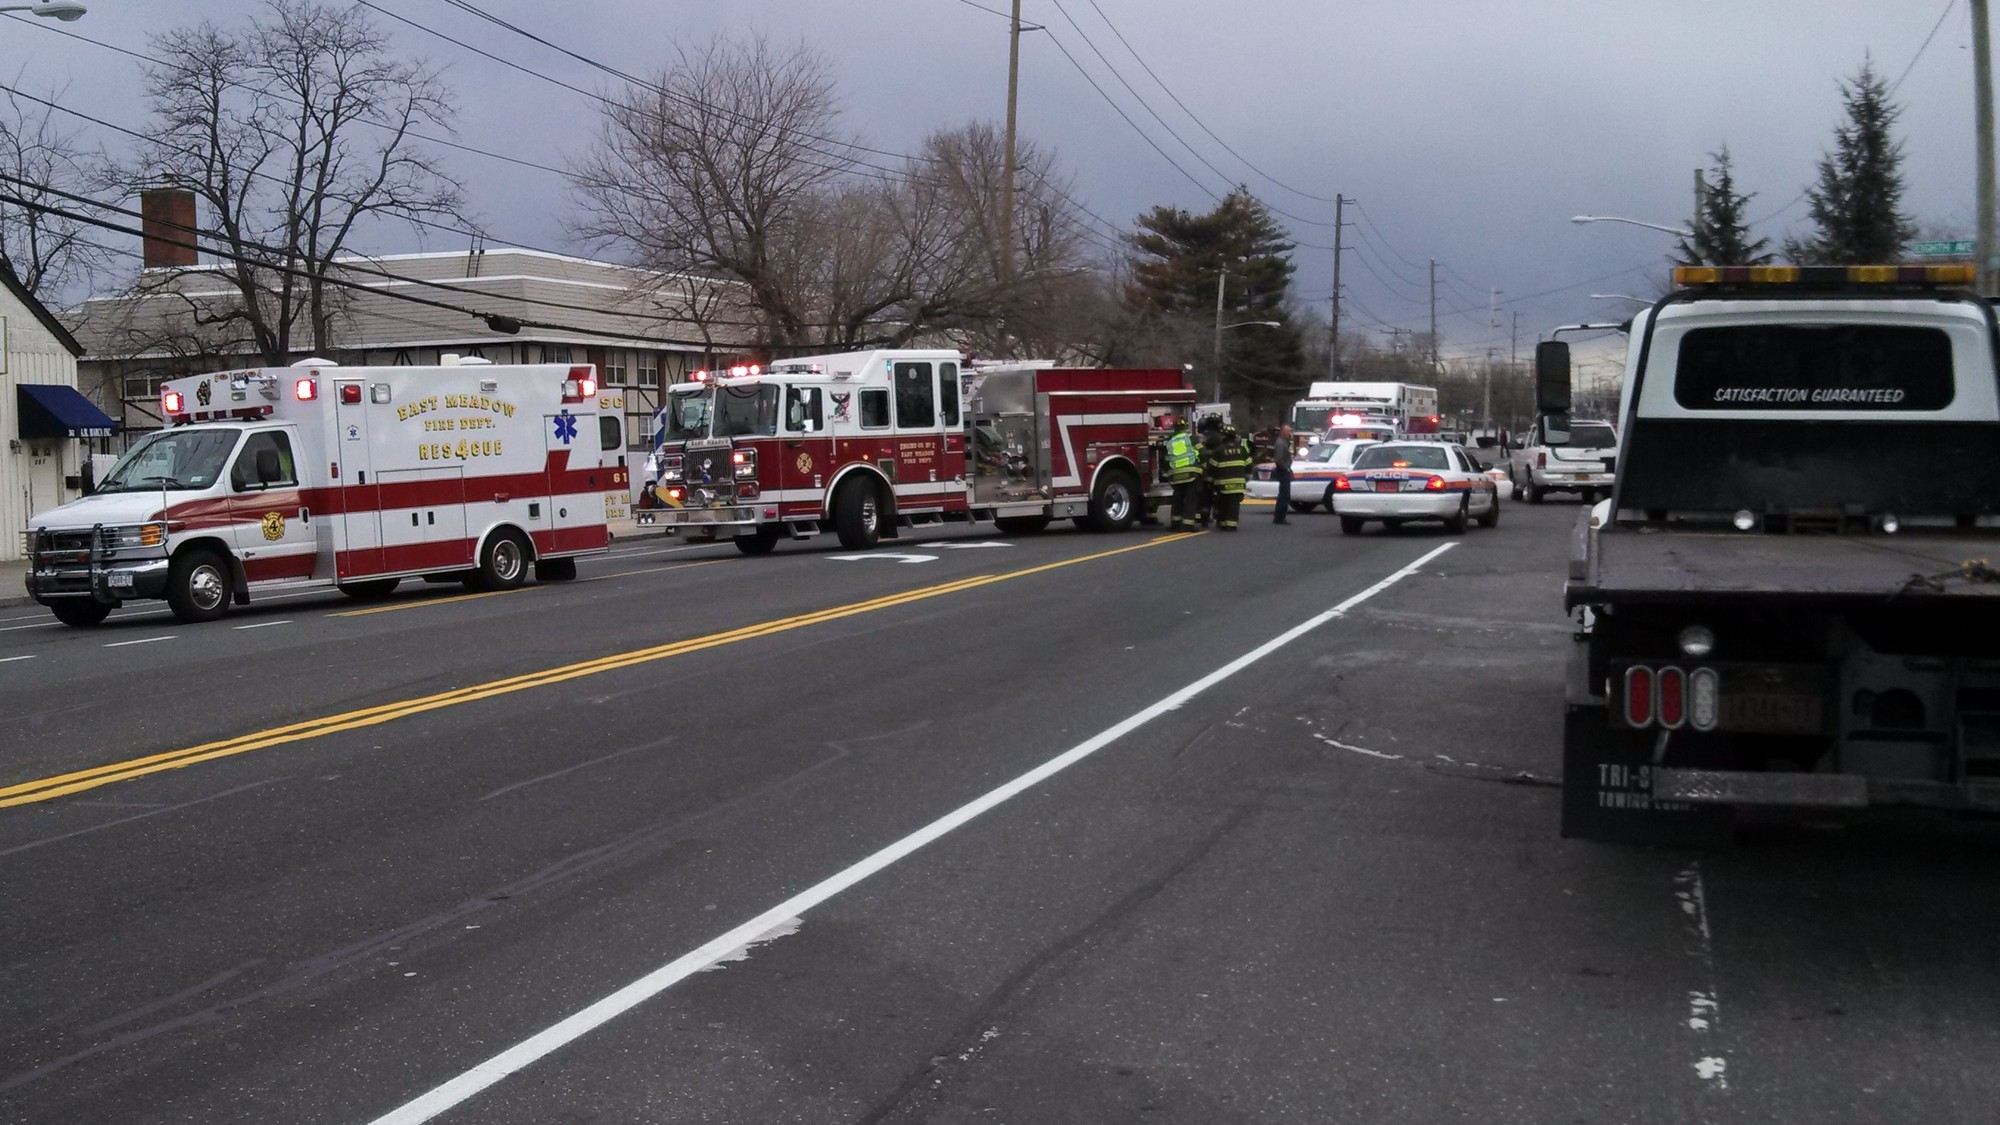 Police, volunteer firefighters and  ambulances responded to the accident on Newbridge Road